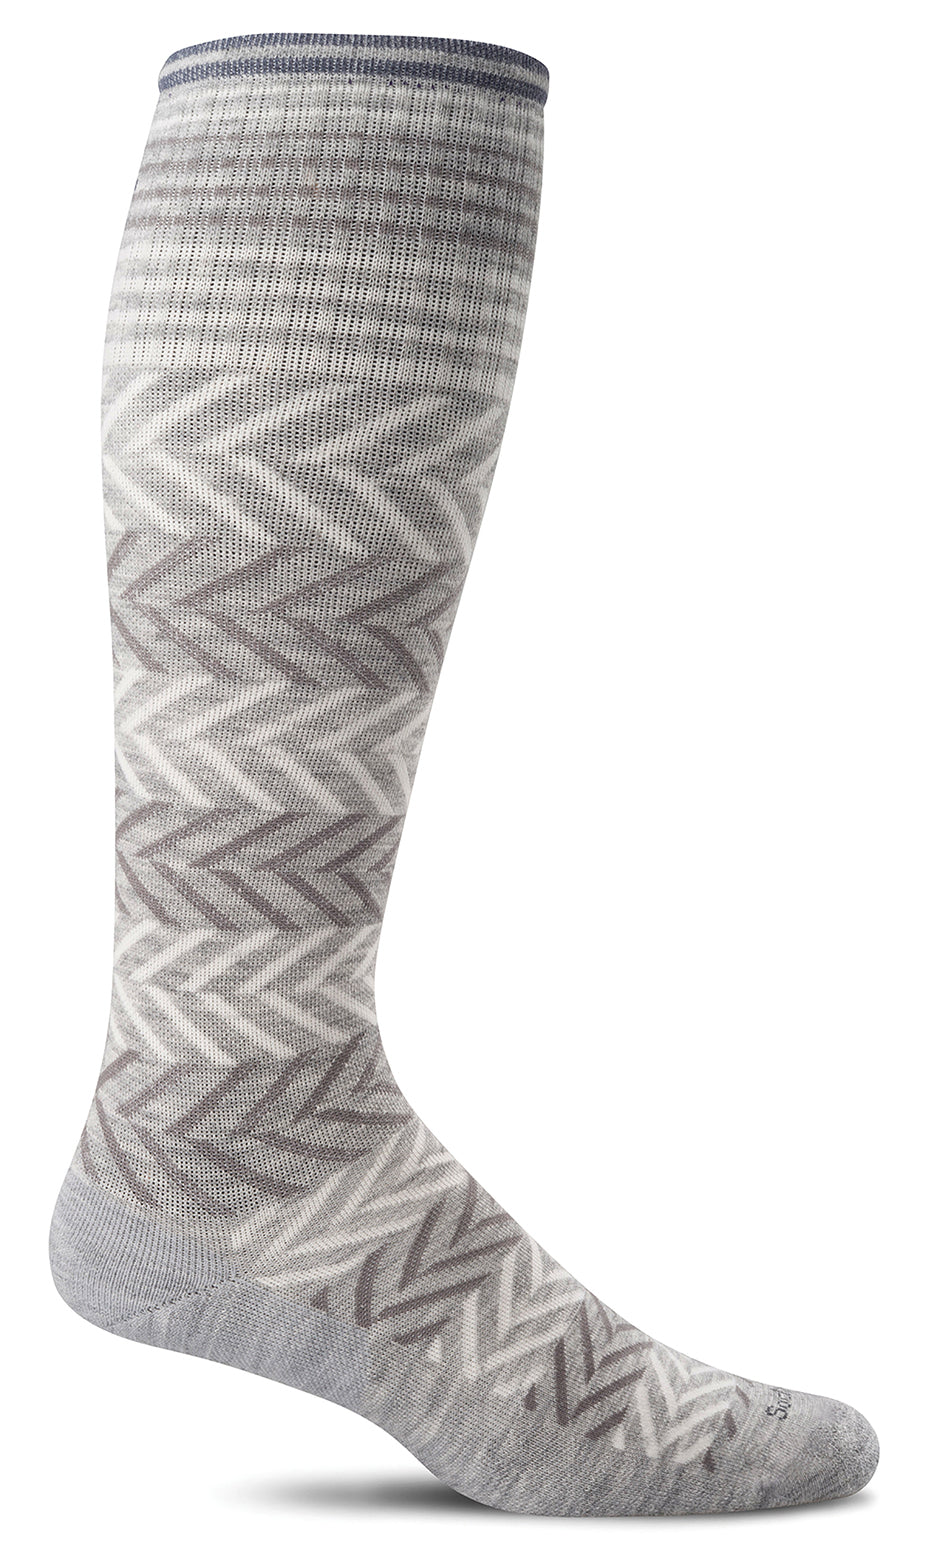 Chevron Knee-High - Grey Moderate Compression